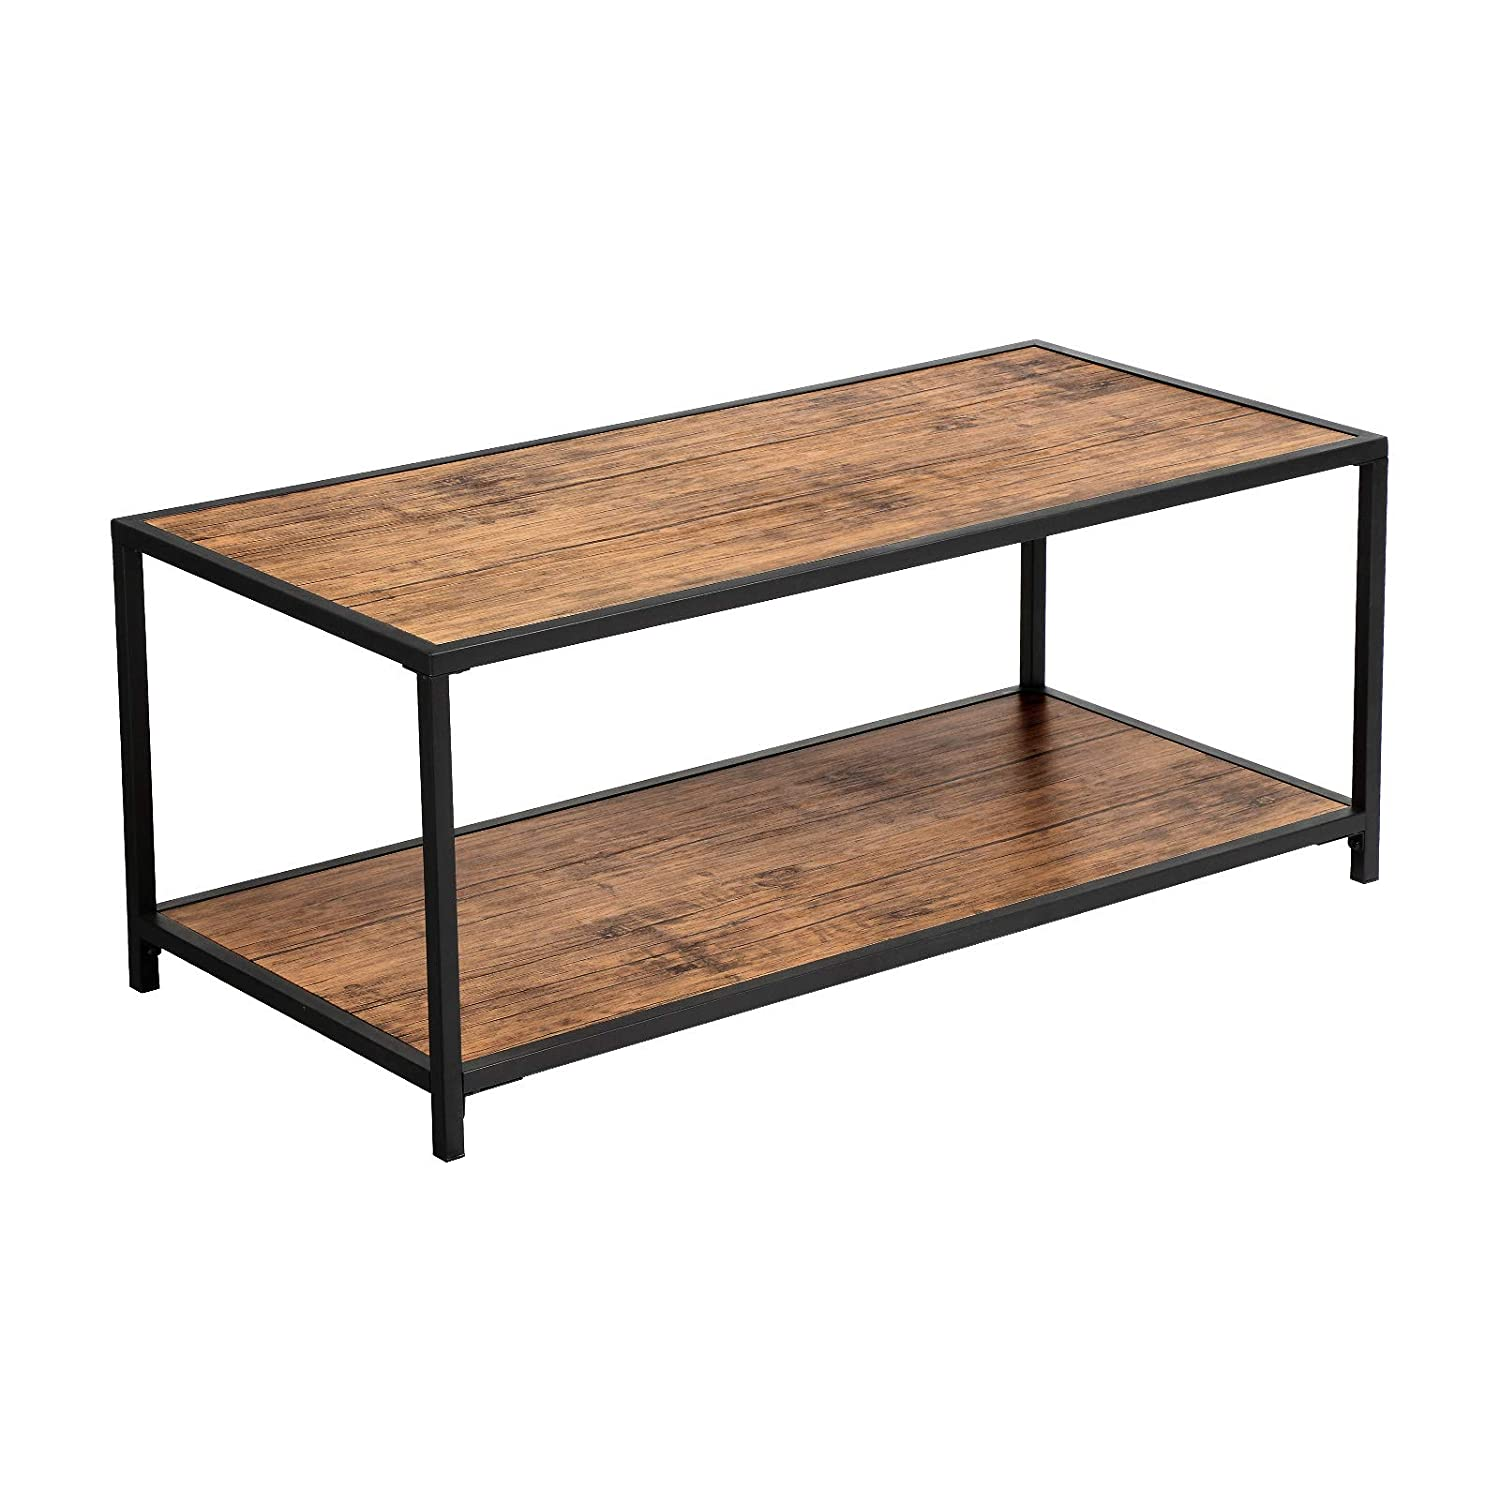 Vasagle Coffee Table Industrial Tea Table With Storage Shelf In